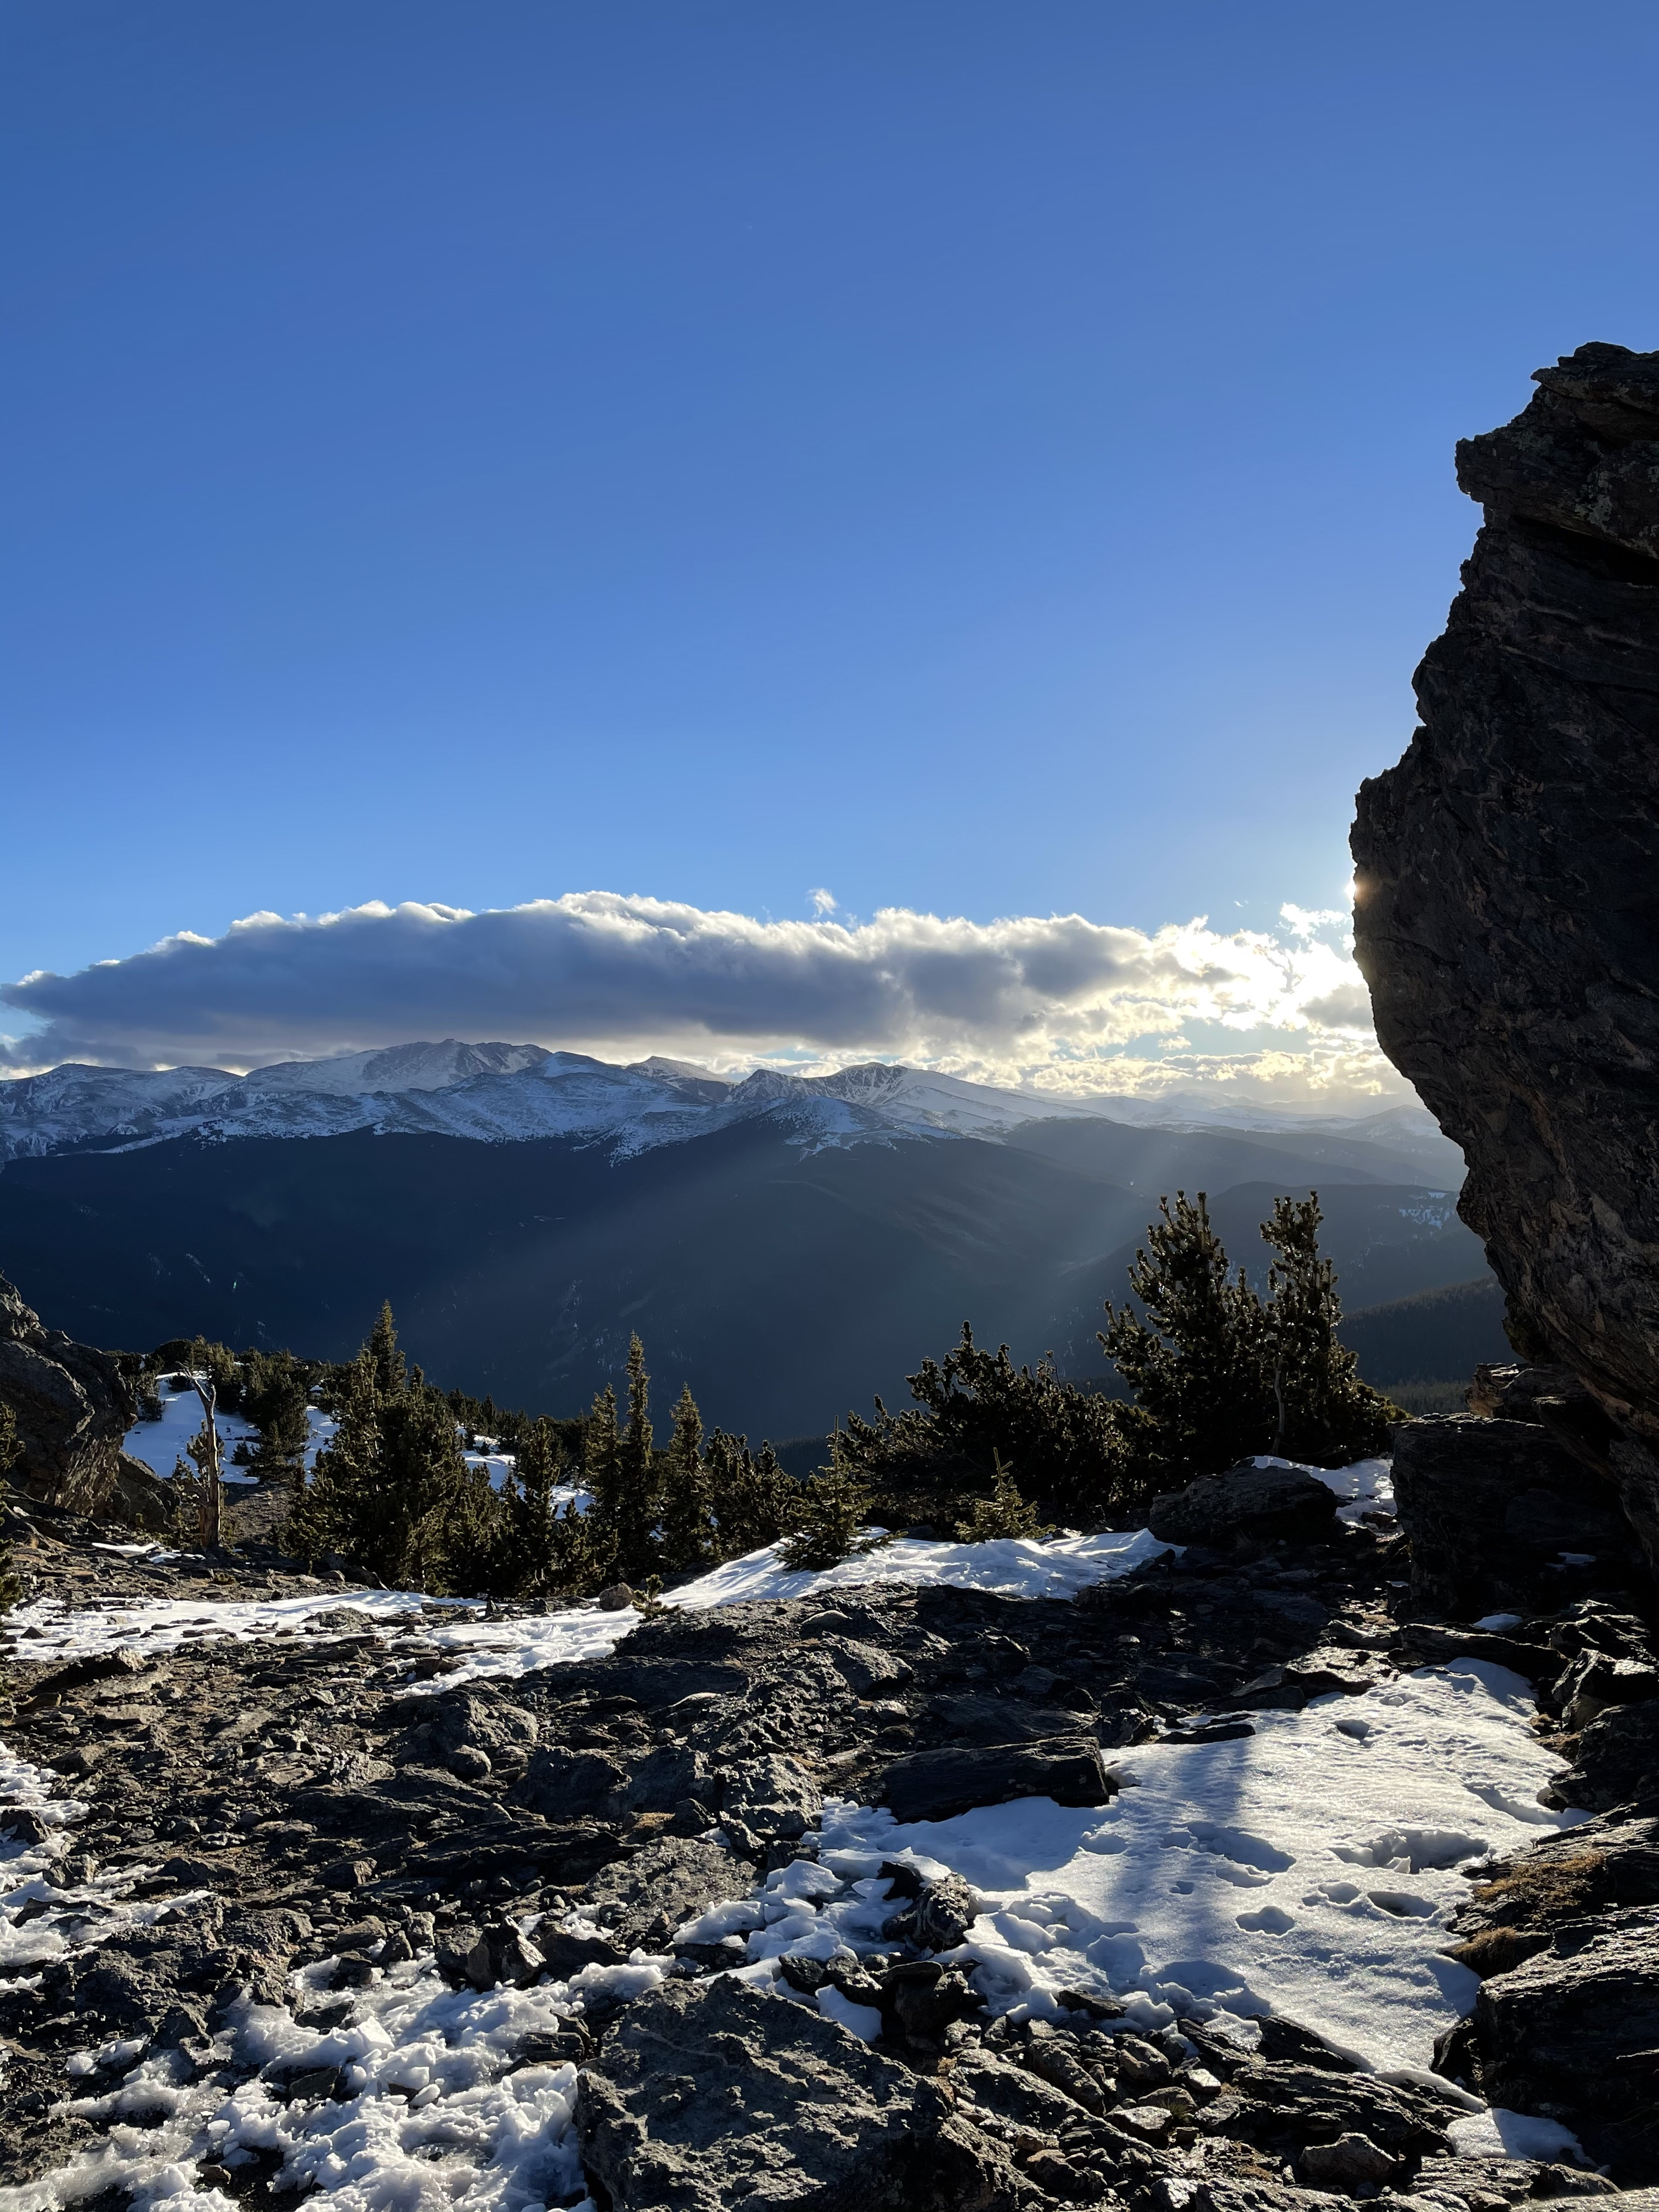 sun peaking around a rock, view of the mountains with clouds overhead and a snow covered ground